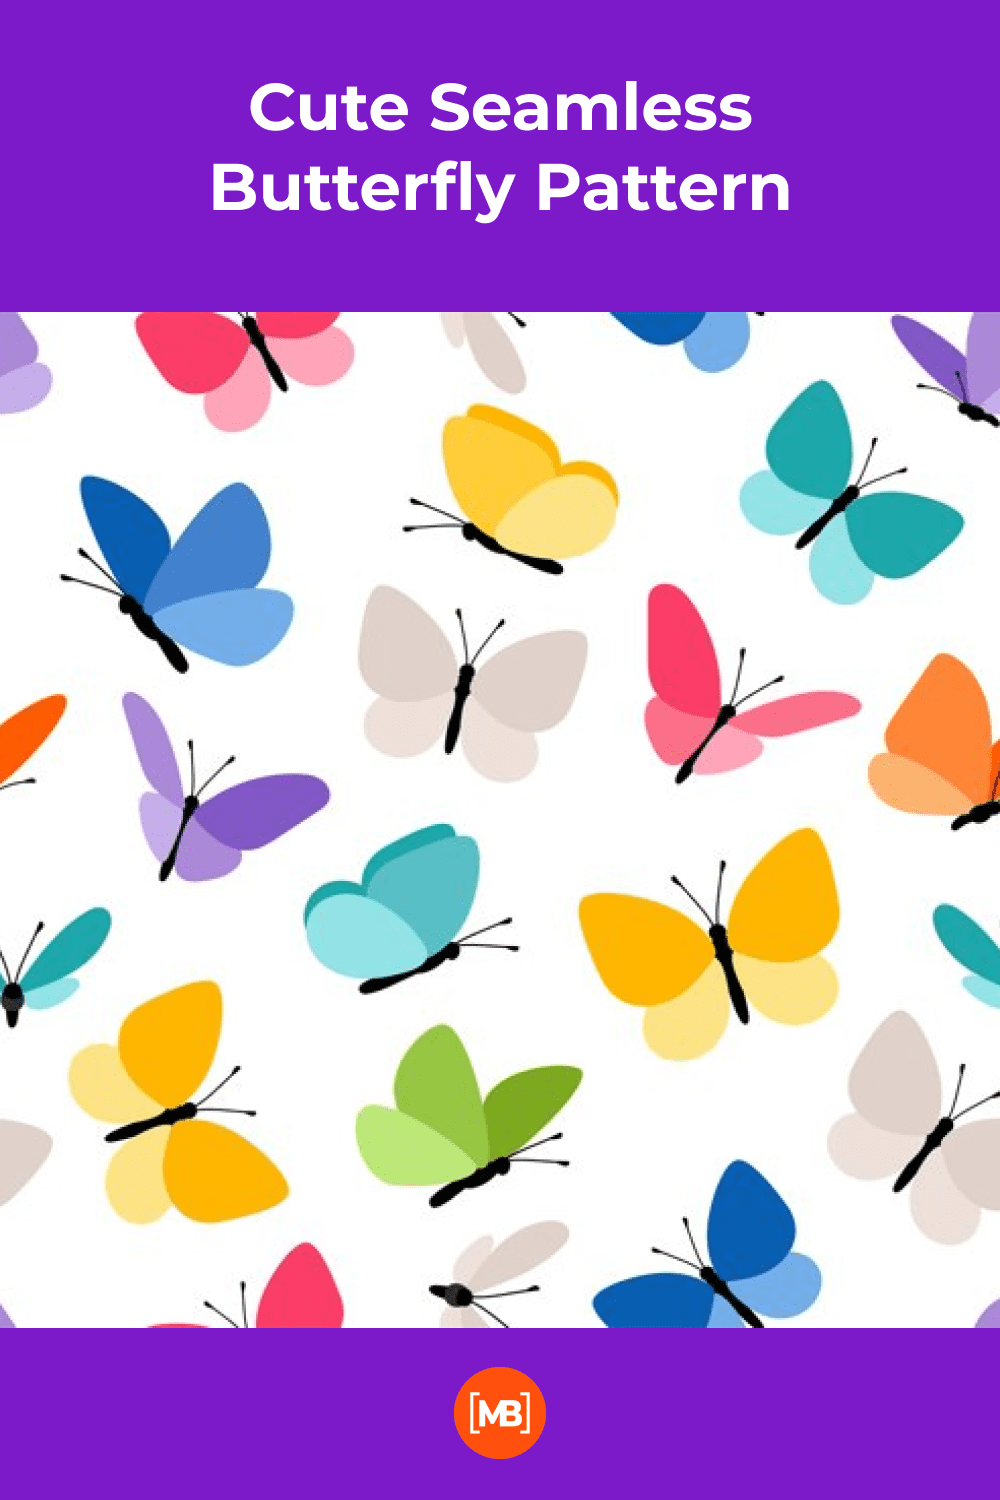 Cute and bright butterflies.